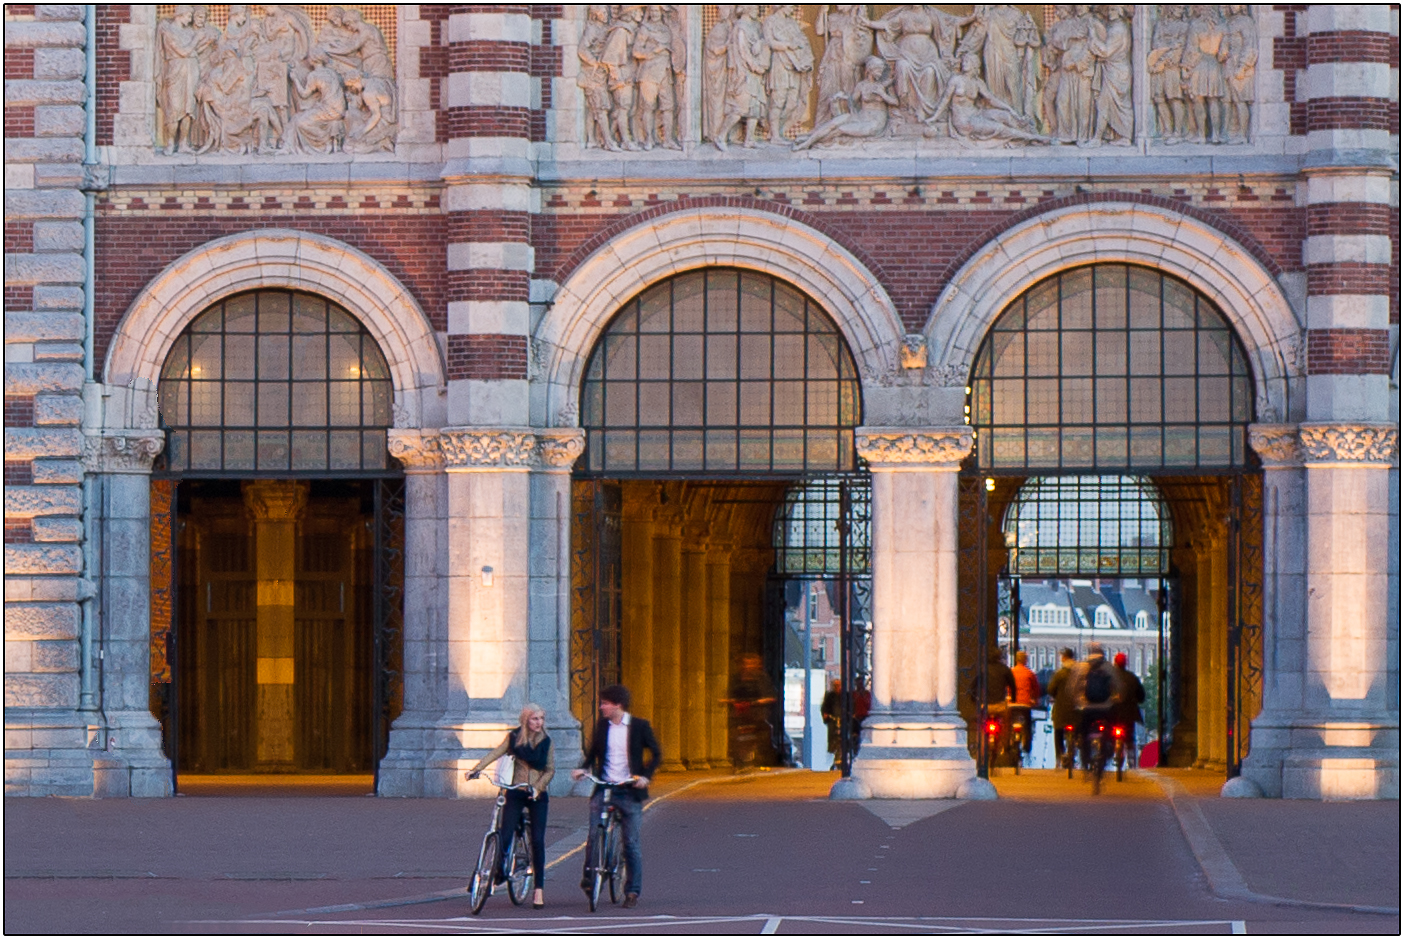 GATES TO THE RIJKSMUSEUM by Andy Smith